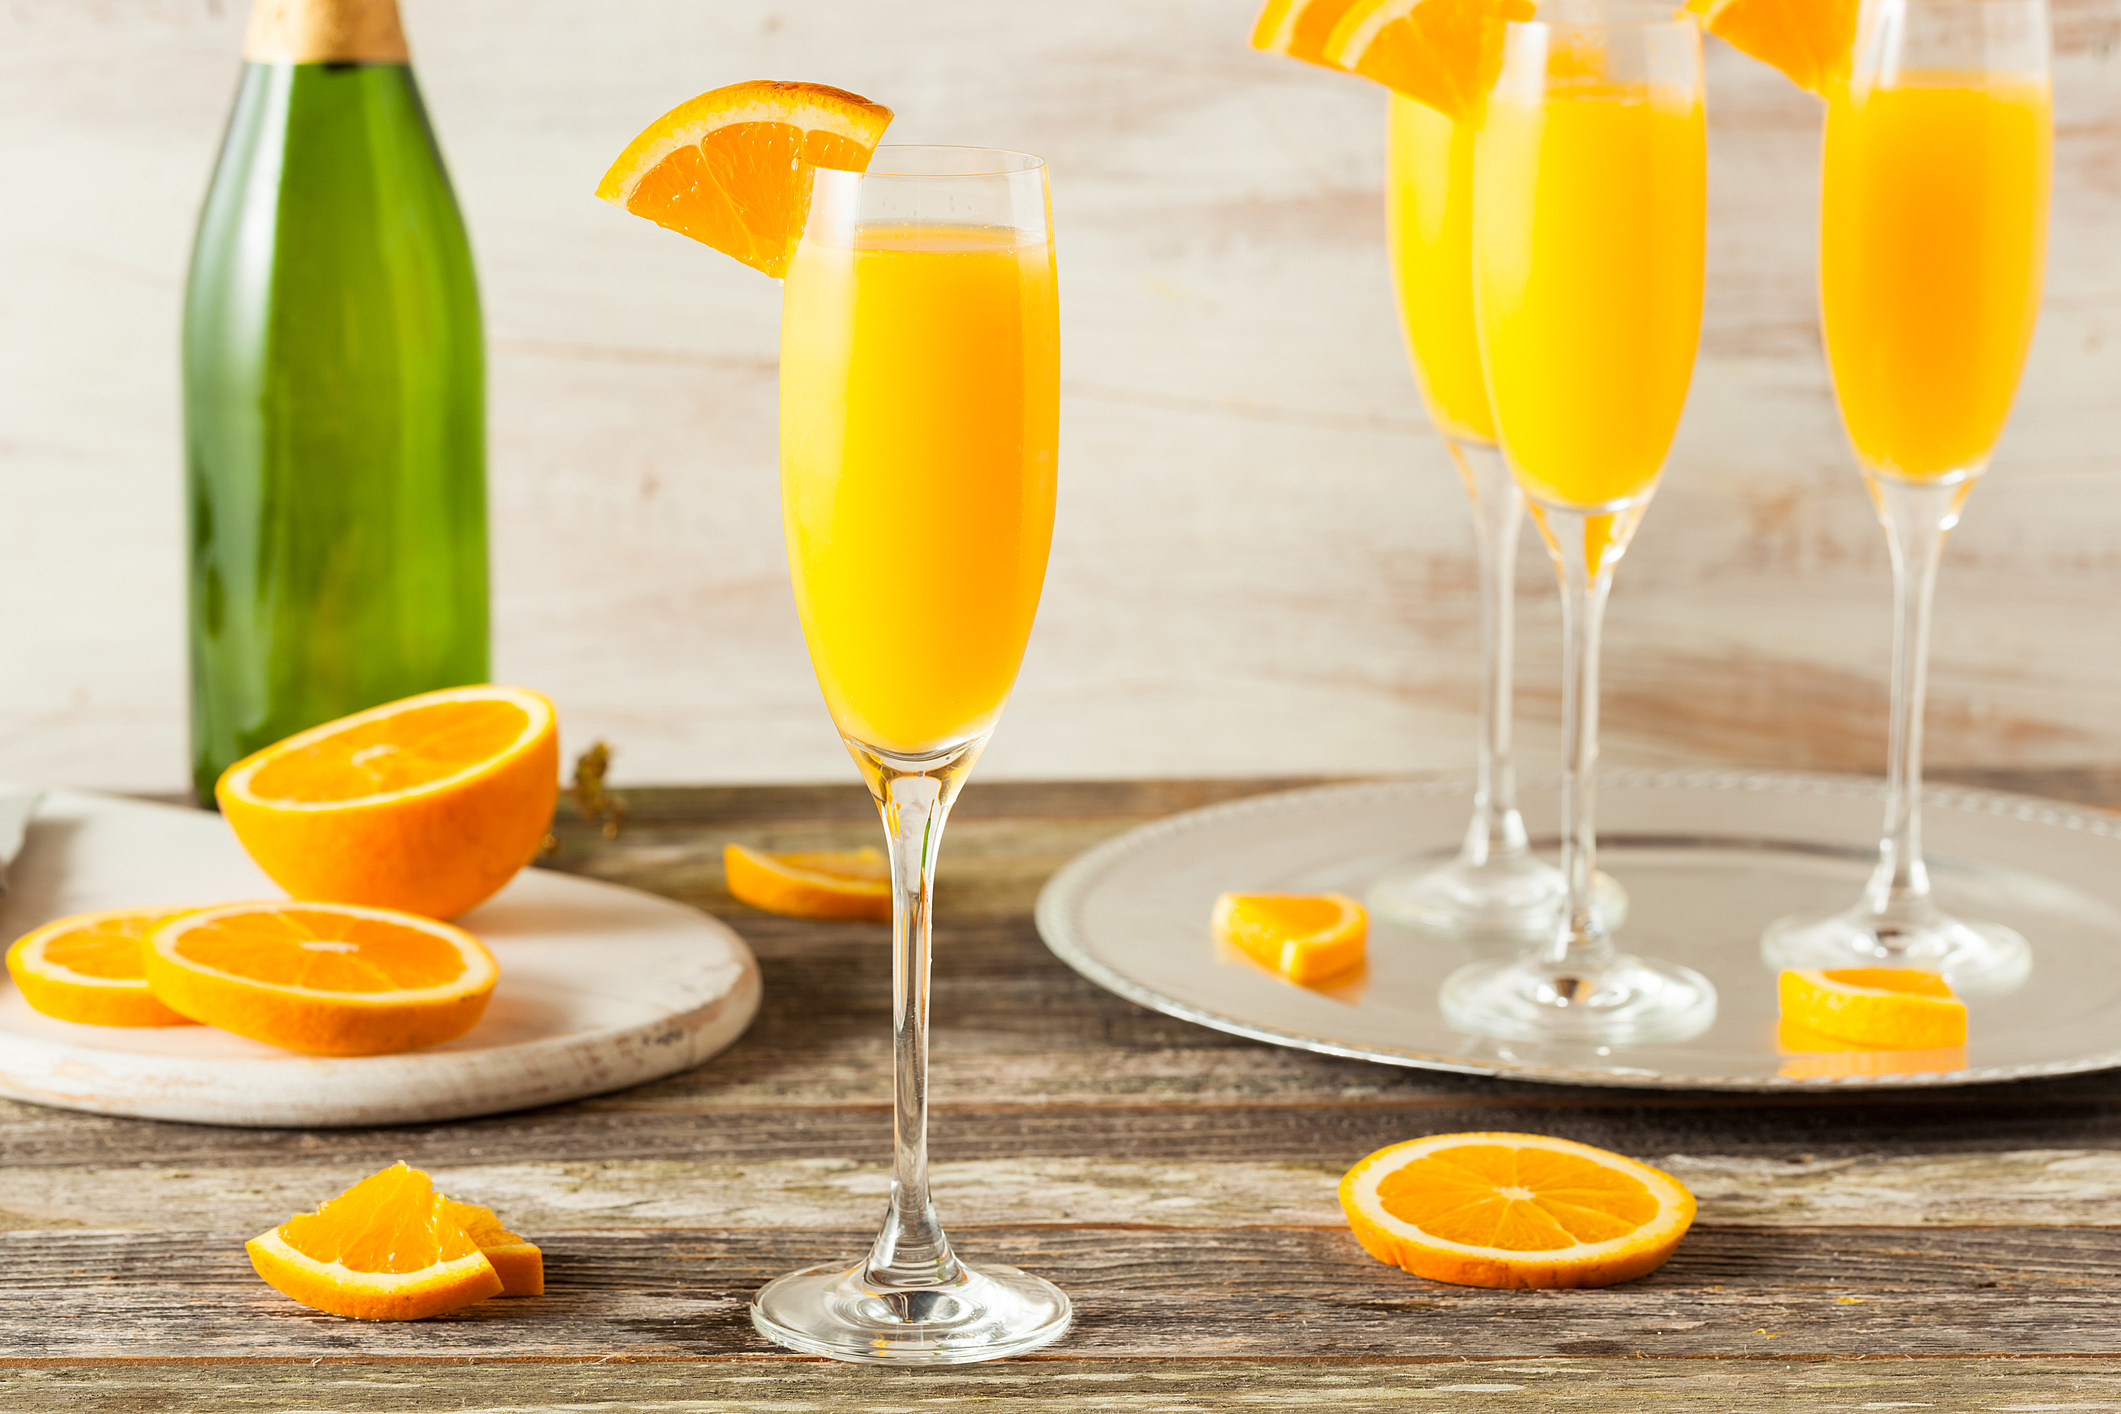 Where To Get The Best Mimosa On National Mimosa Day!